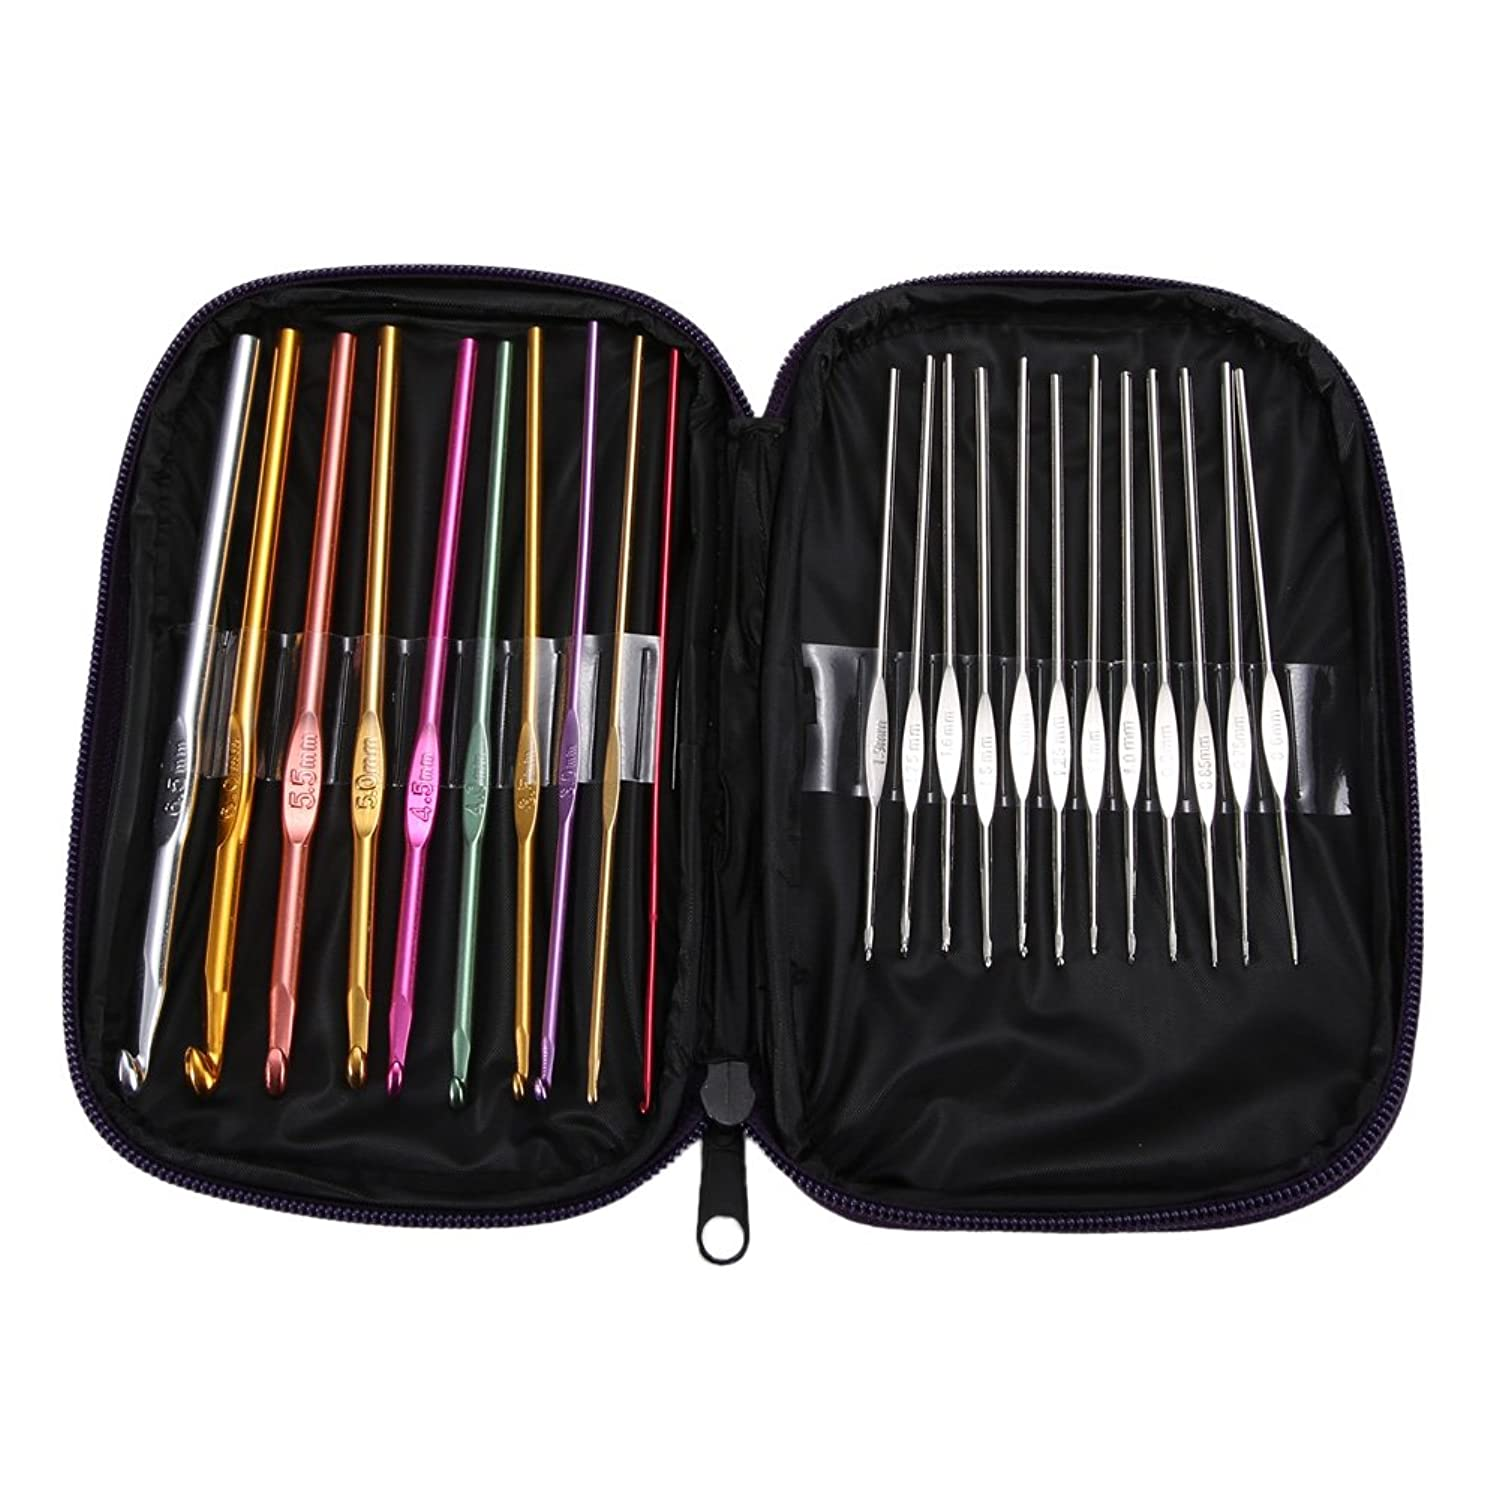 Anysell88 22 PCS Crochet Hook Knitting Knit Needle Mixed Aluminum Handle Sewing Weave Yarn Set for Crocheting, Lace, Doilies and Flower Projects